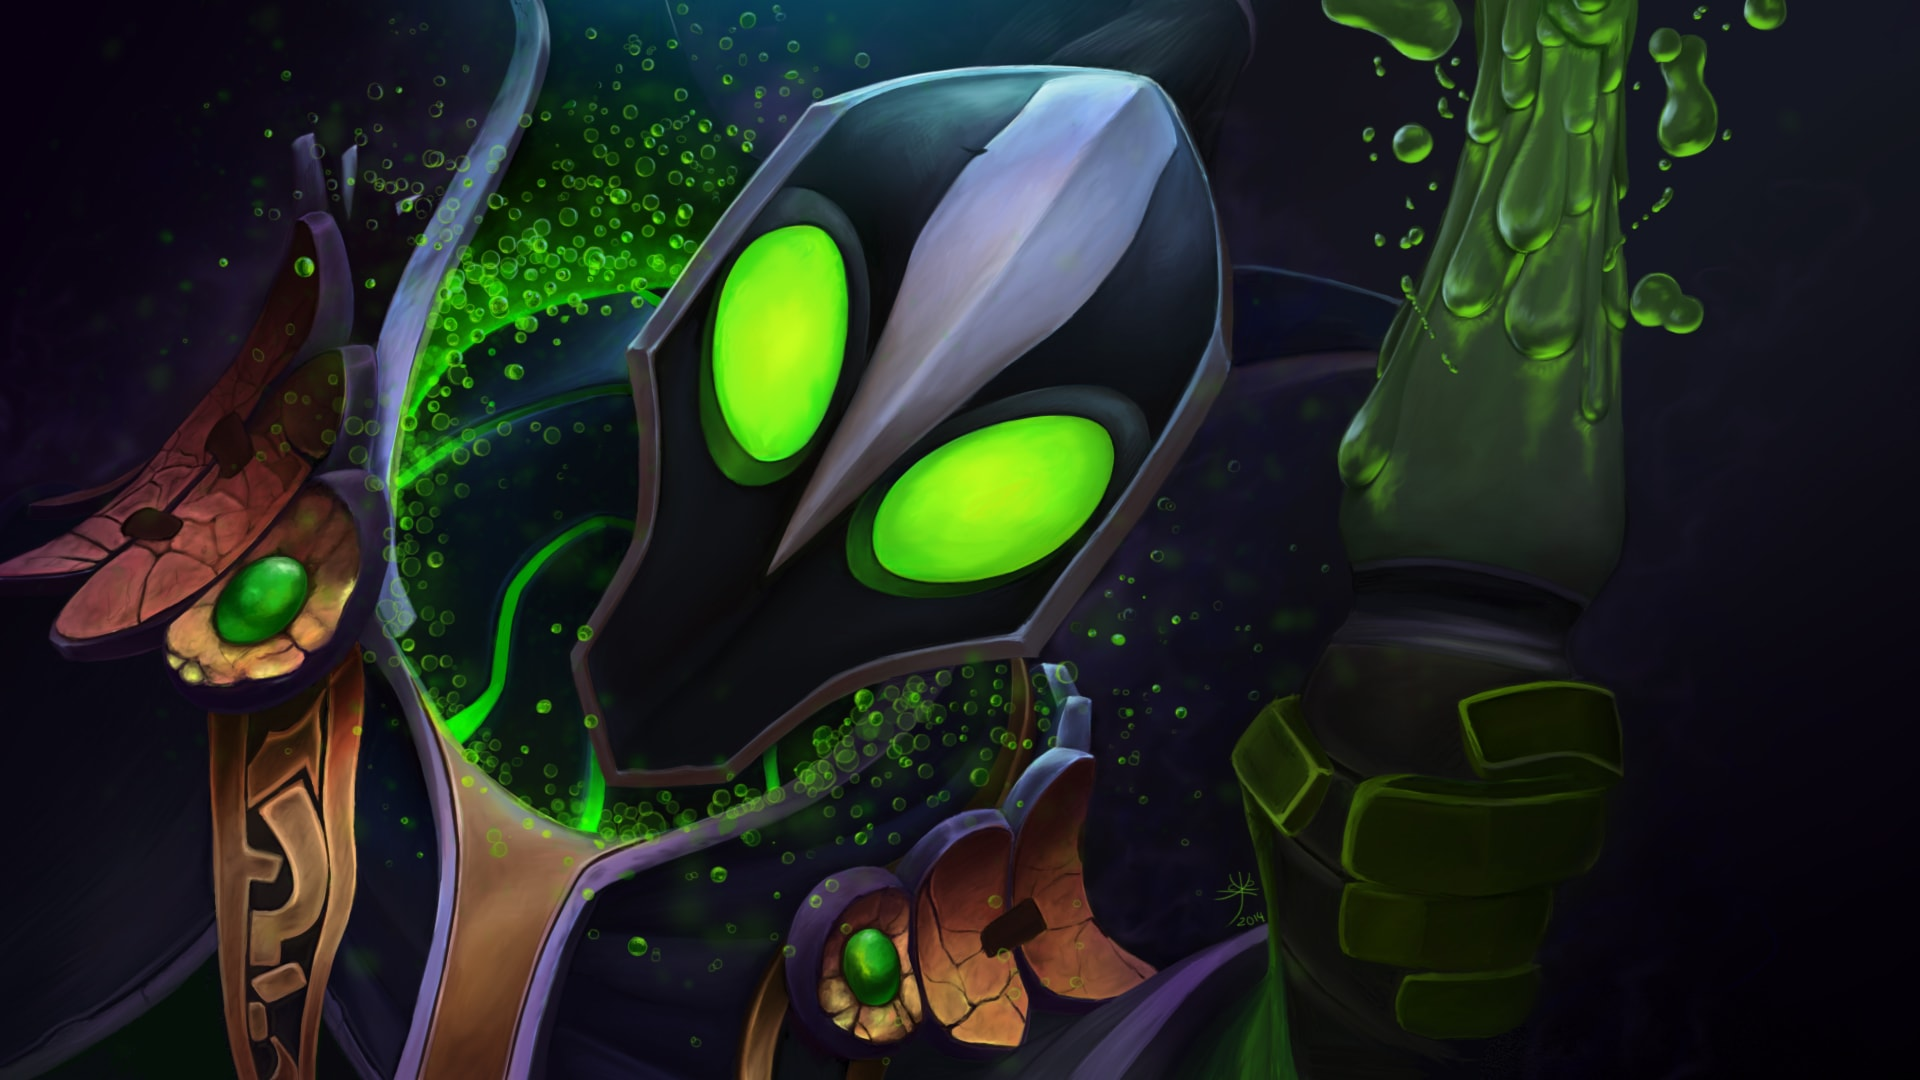 Dota2 : Rubick Wallpapers hd